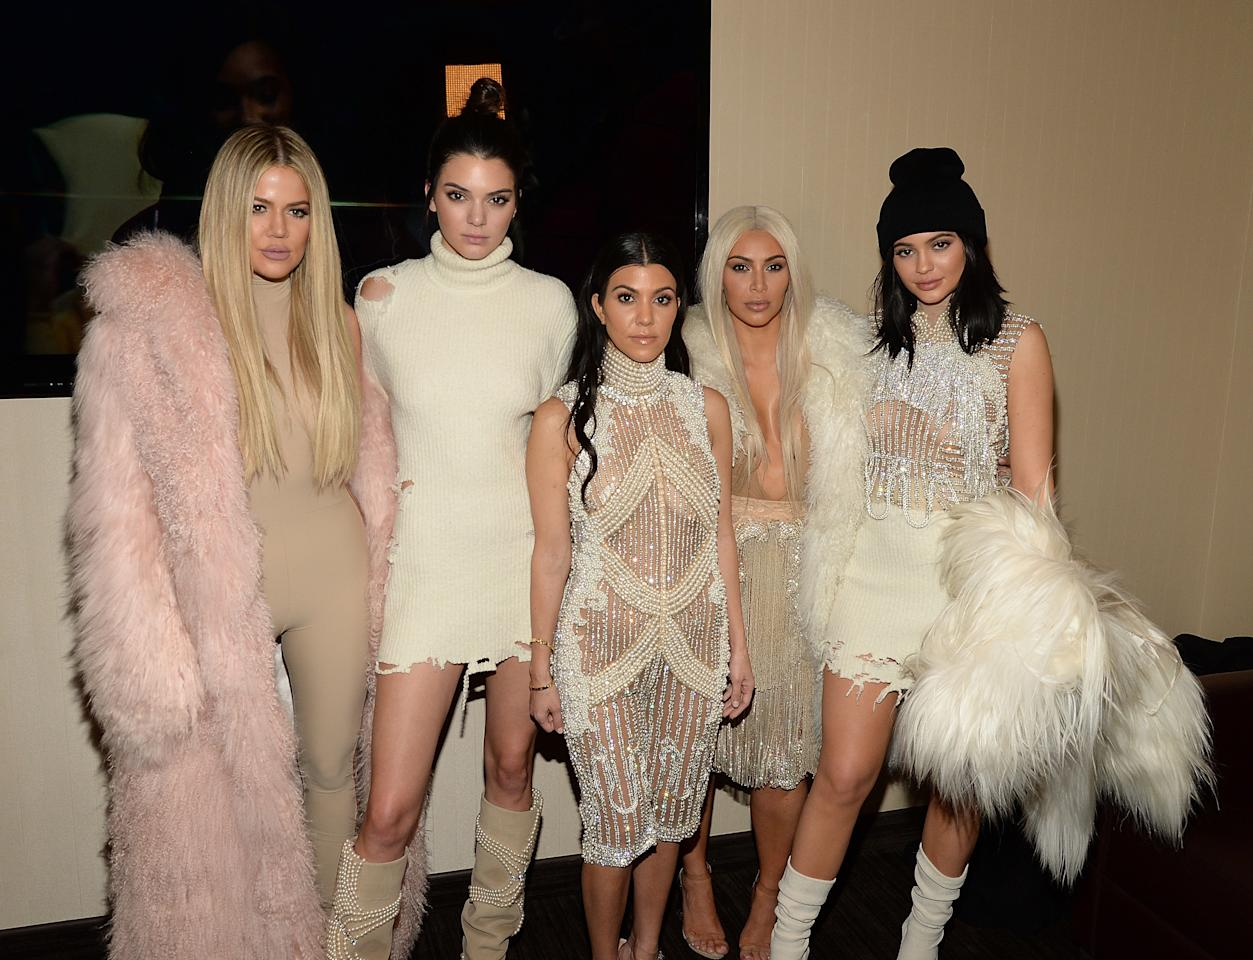 <p>Kourtney, born 1979 is the oldest Kardashian-Jenner sibling, followed by Kim, who was born in 1980. Khloe was born in 1984 and brother Rob in 1987. Kendall and Kylie, the Kardashians' half-sisters, were born in 1995 and 1997. <em>[Photo: Getty]</em> </p>